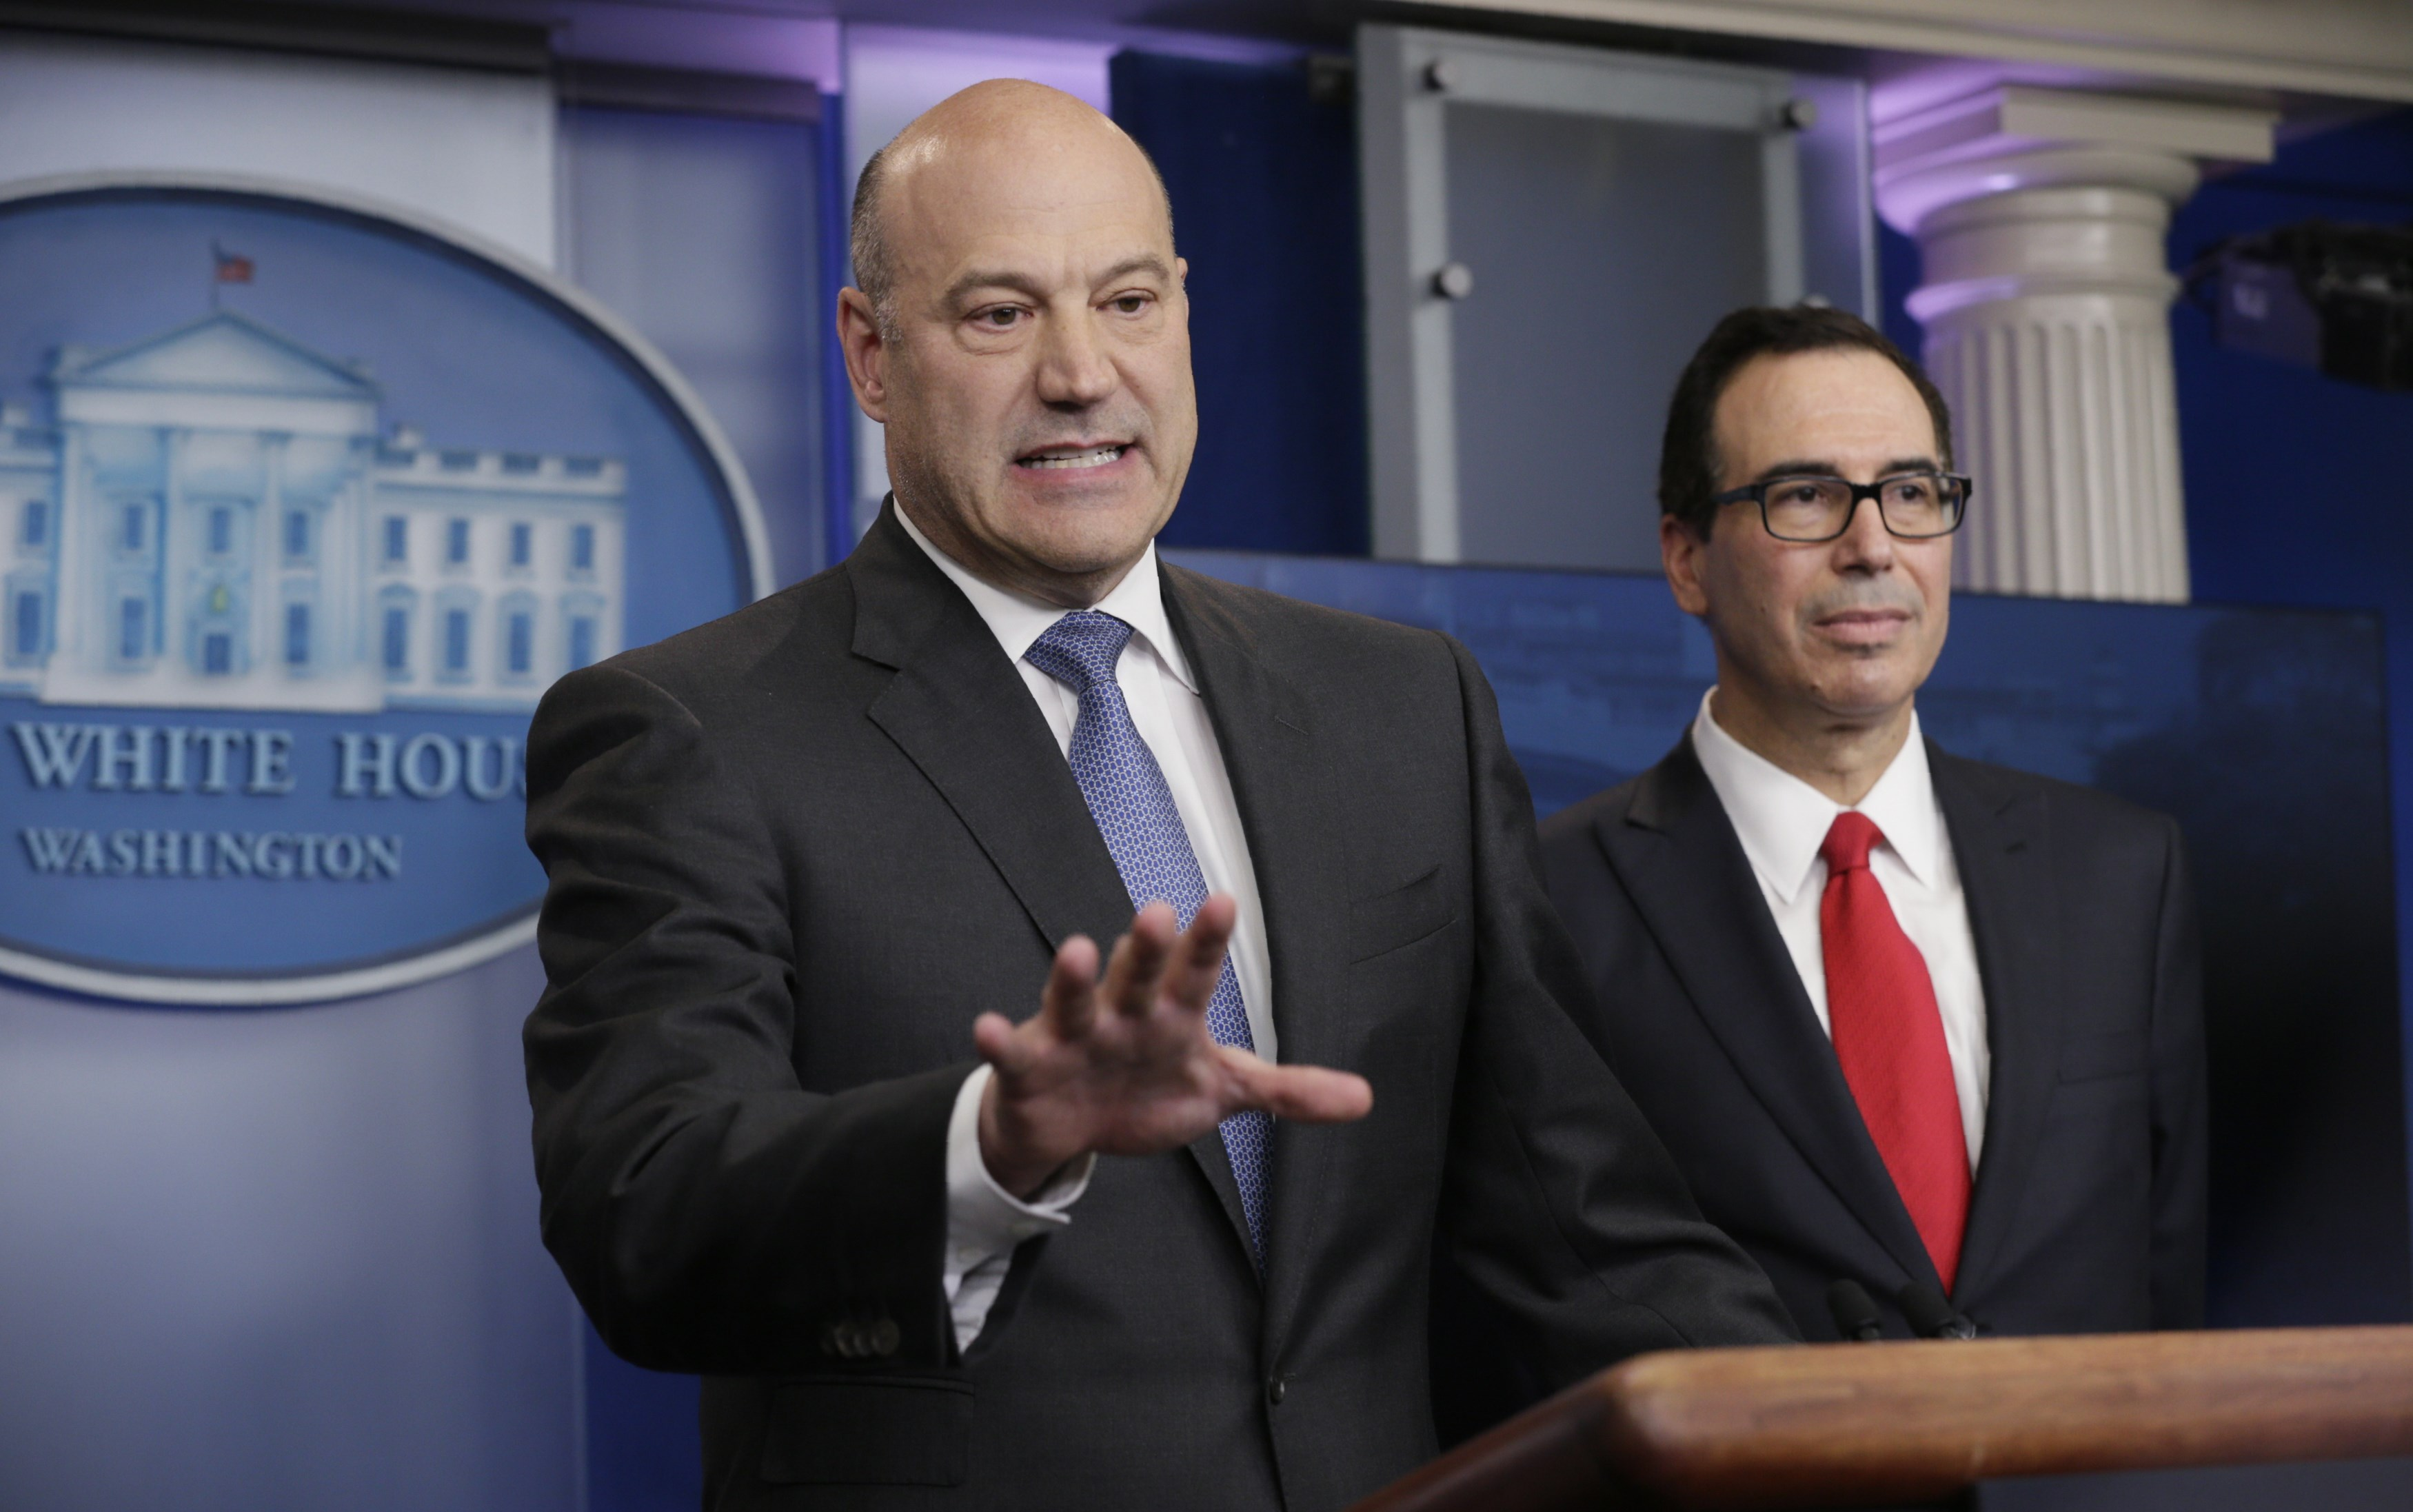 U.S. National Economic Director Gary Cohn (L) and Treasury Secretary Steven Mnuchin unveil the Trump administration's tax reform proposal in the White House briefing room in Washington on April 26, 2017. (REUTERS/Kevin Lamarque)